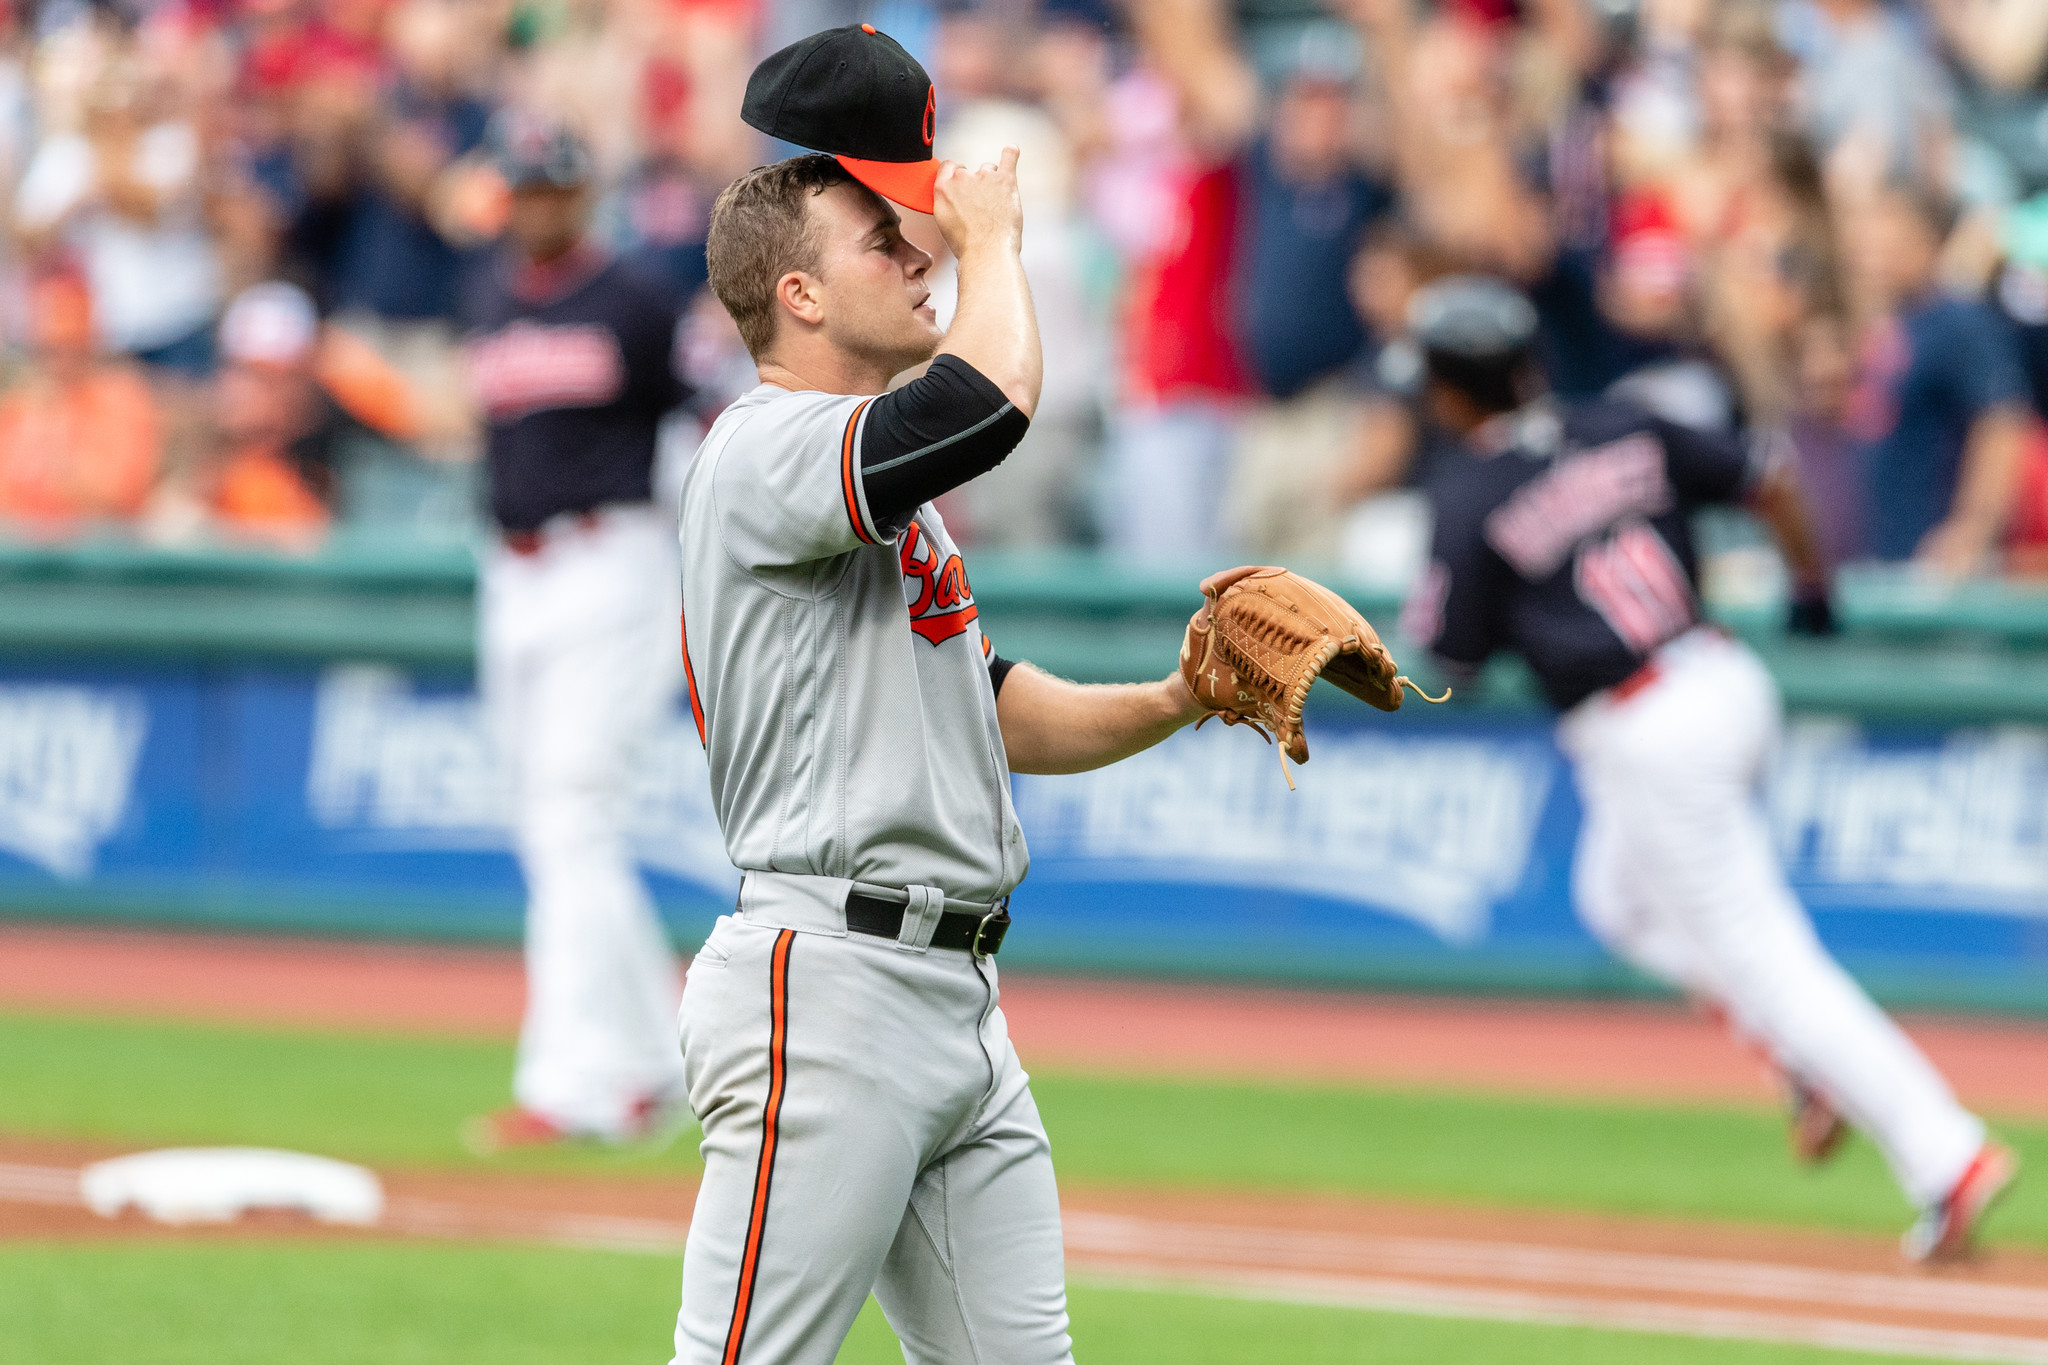 Bal-orioles-rewind-looking-back-at-friday-night-s-2-1-loss-to-the-indians-20180817